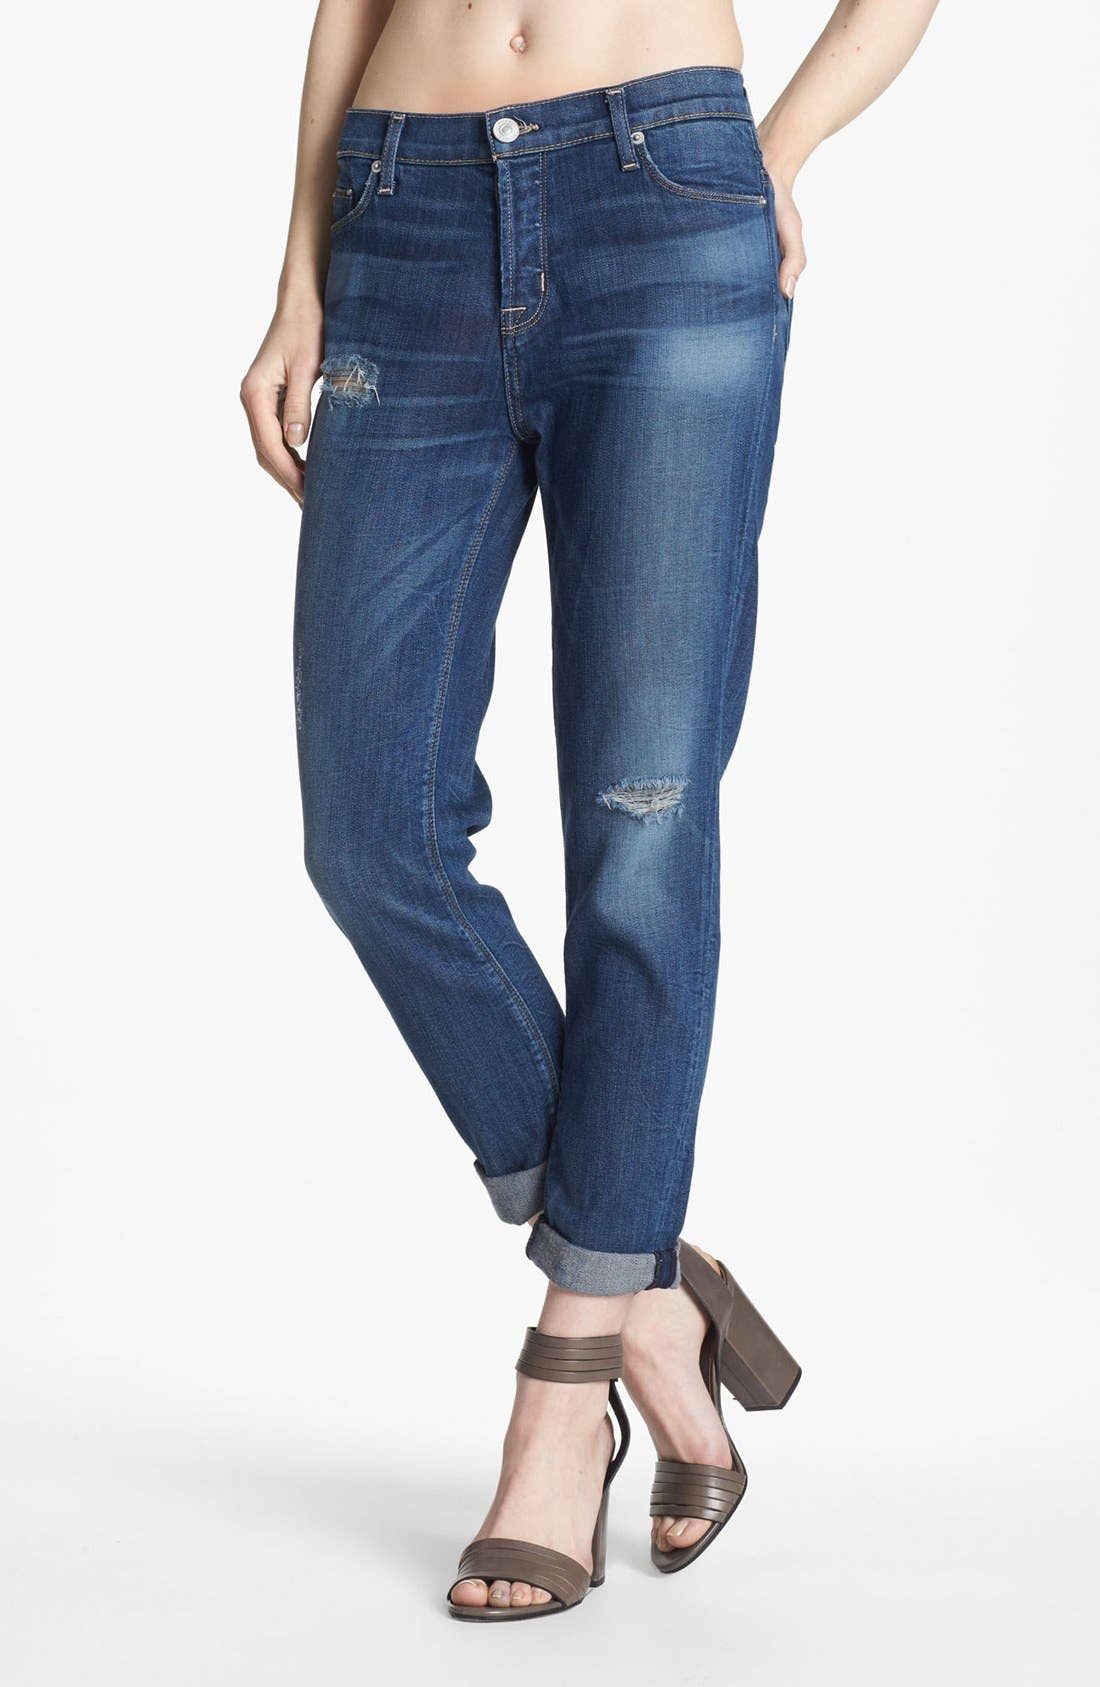 Main Image - Hudson Jeans 'Leigh' Boyfriend Jeans (Youth Vintage)